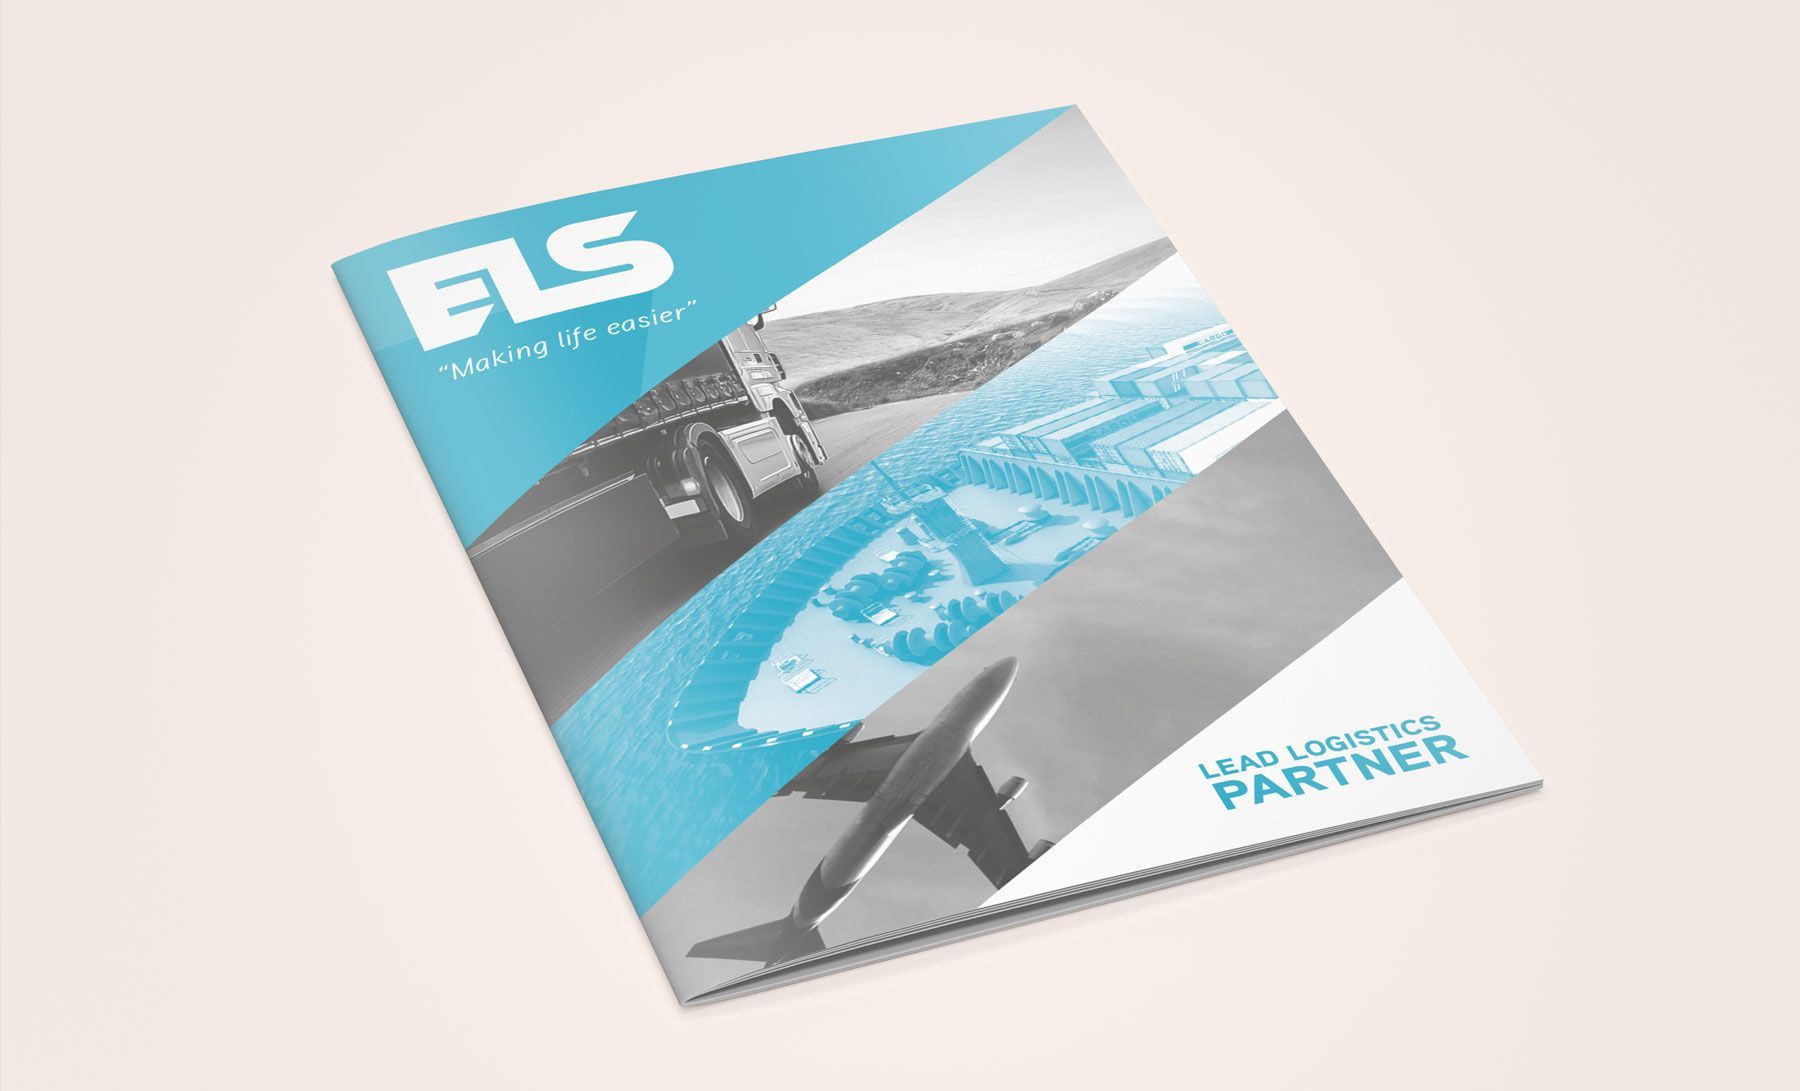 Lead Logistic Partner Brochure ELS